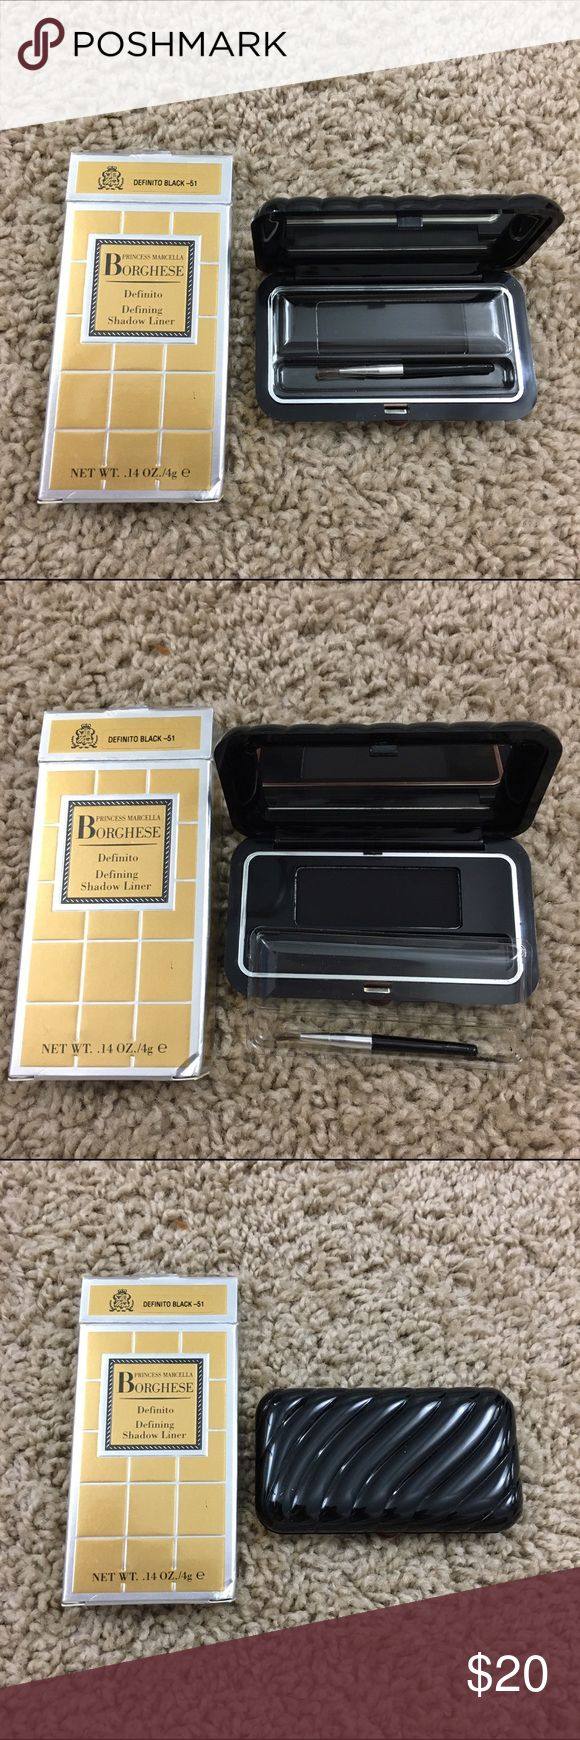 ✨NIB- Borghese Defining Shadow Liner✨ Authentic! Brand new, never used! Princess Marcella Borghese black eyeshadow that doubles as an eyeliner. Fashionable compact comes with mirror and small liner brush so you can take it on the go!  Color: Definito Black - 5 Borghese Makeup Eyeliner